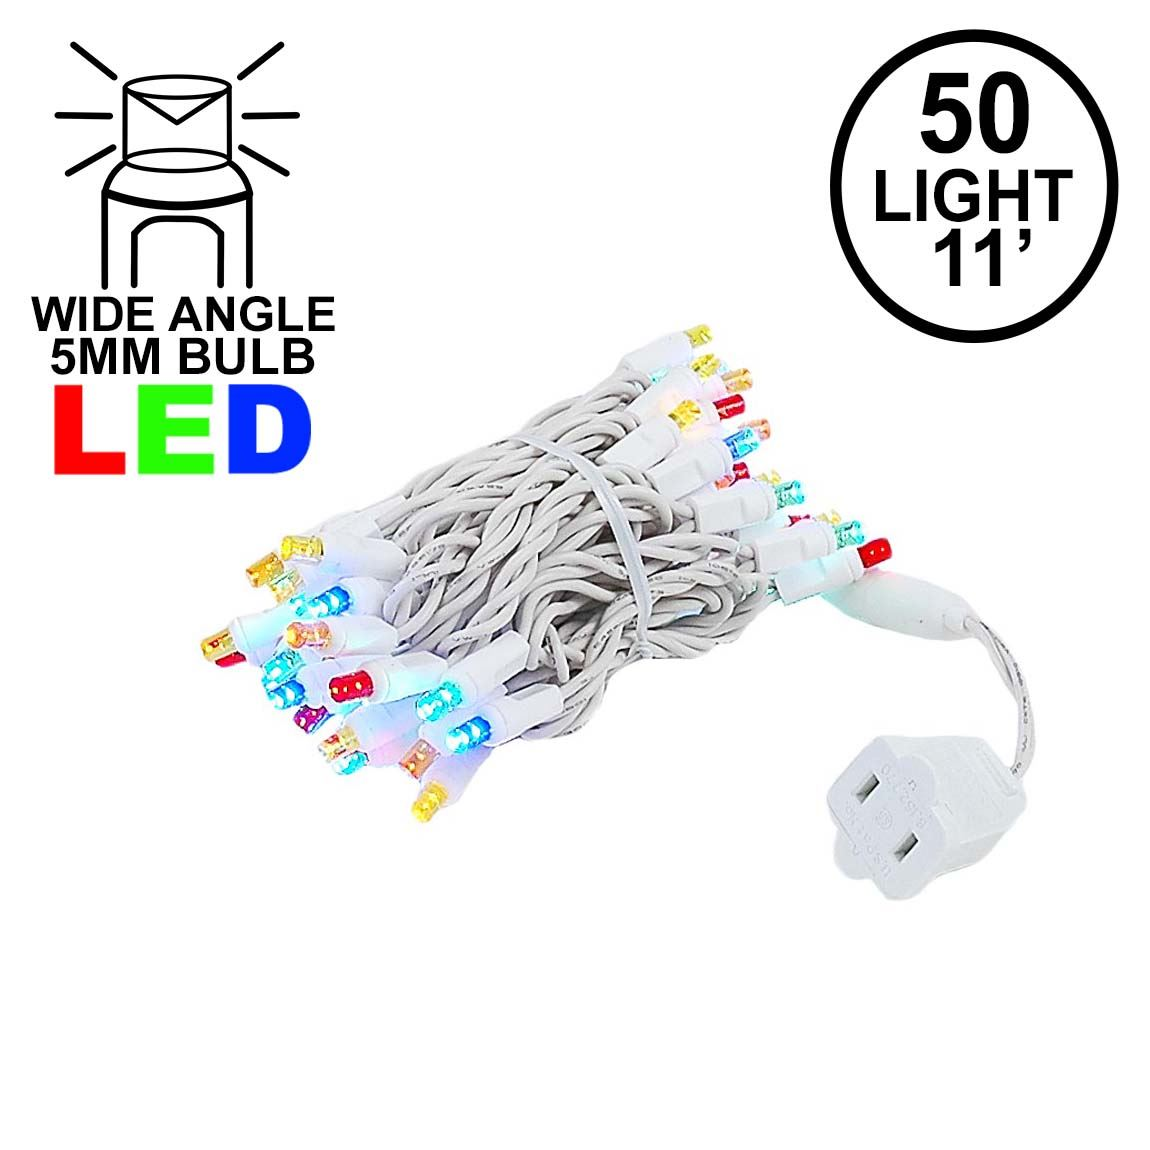 Picture of 50 LED Multi LED Christmas Lights 11' Long on White Wire